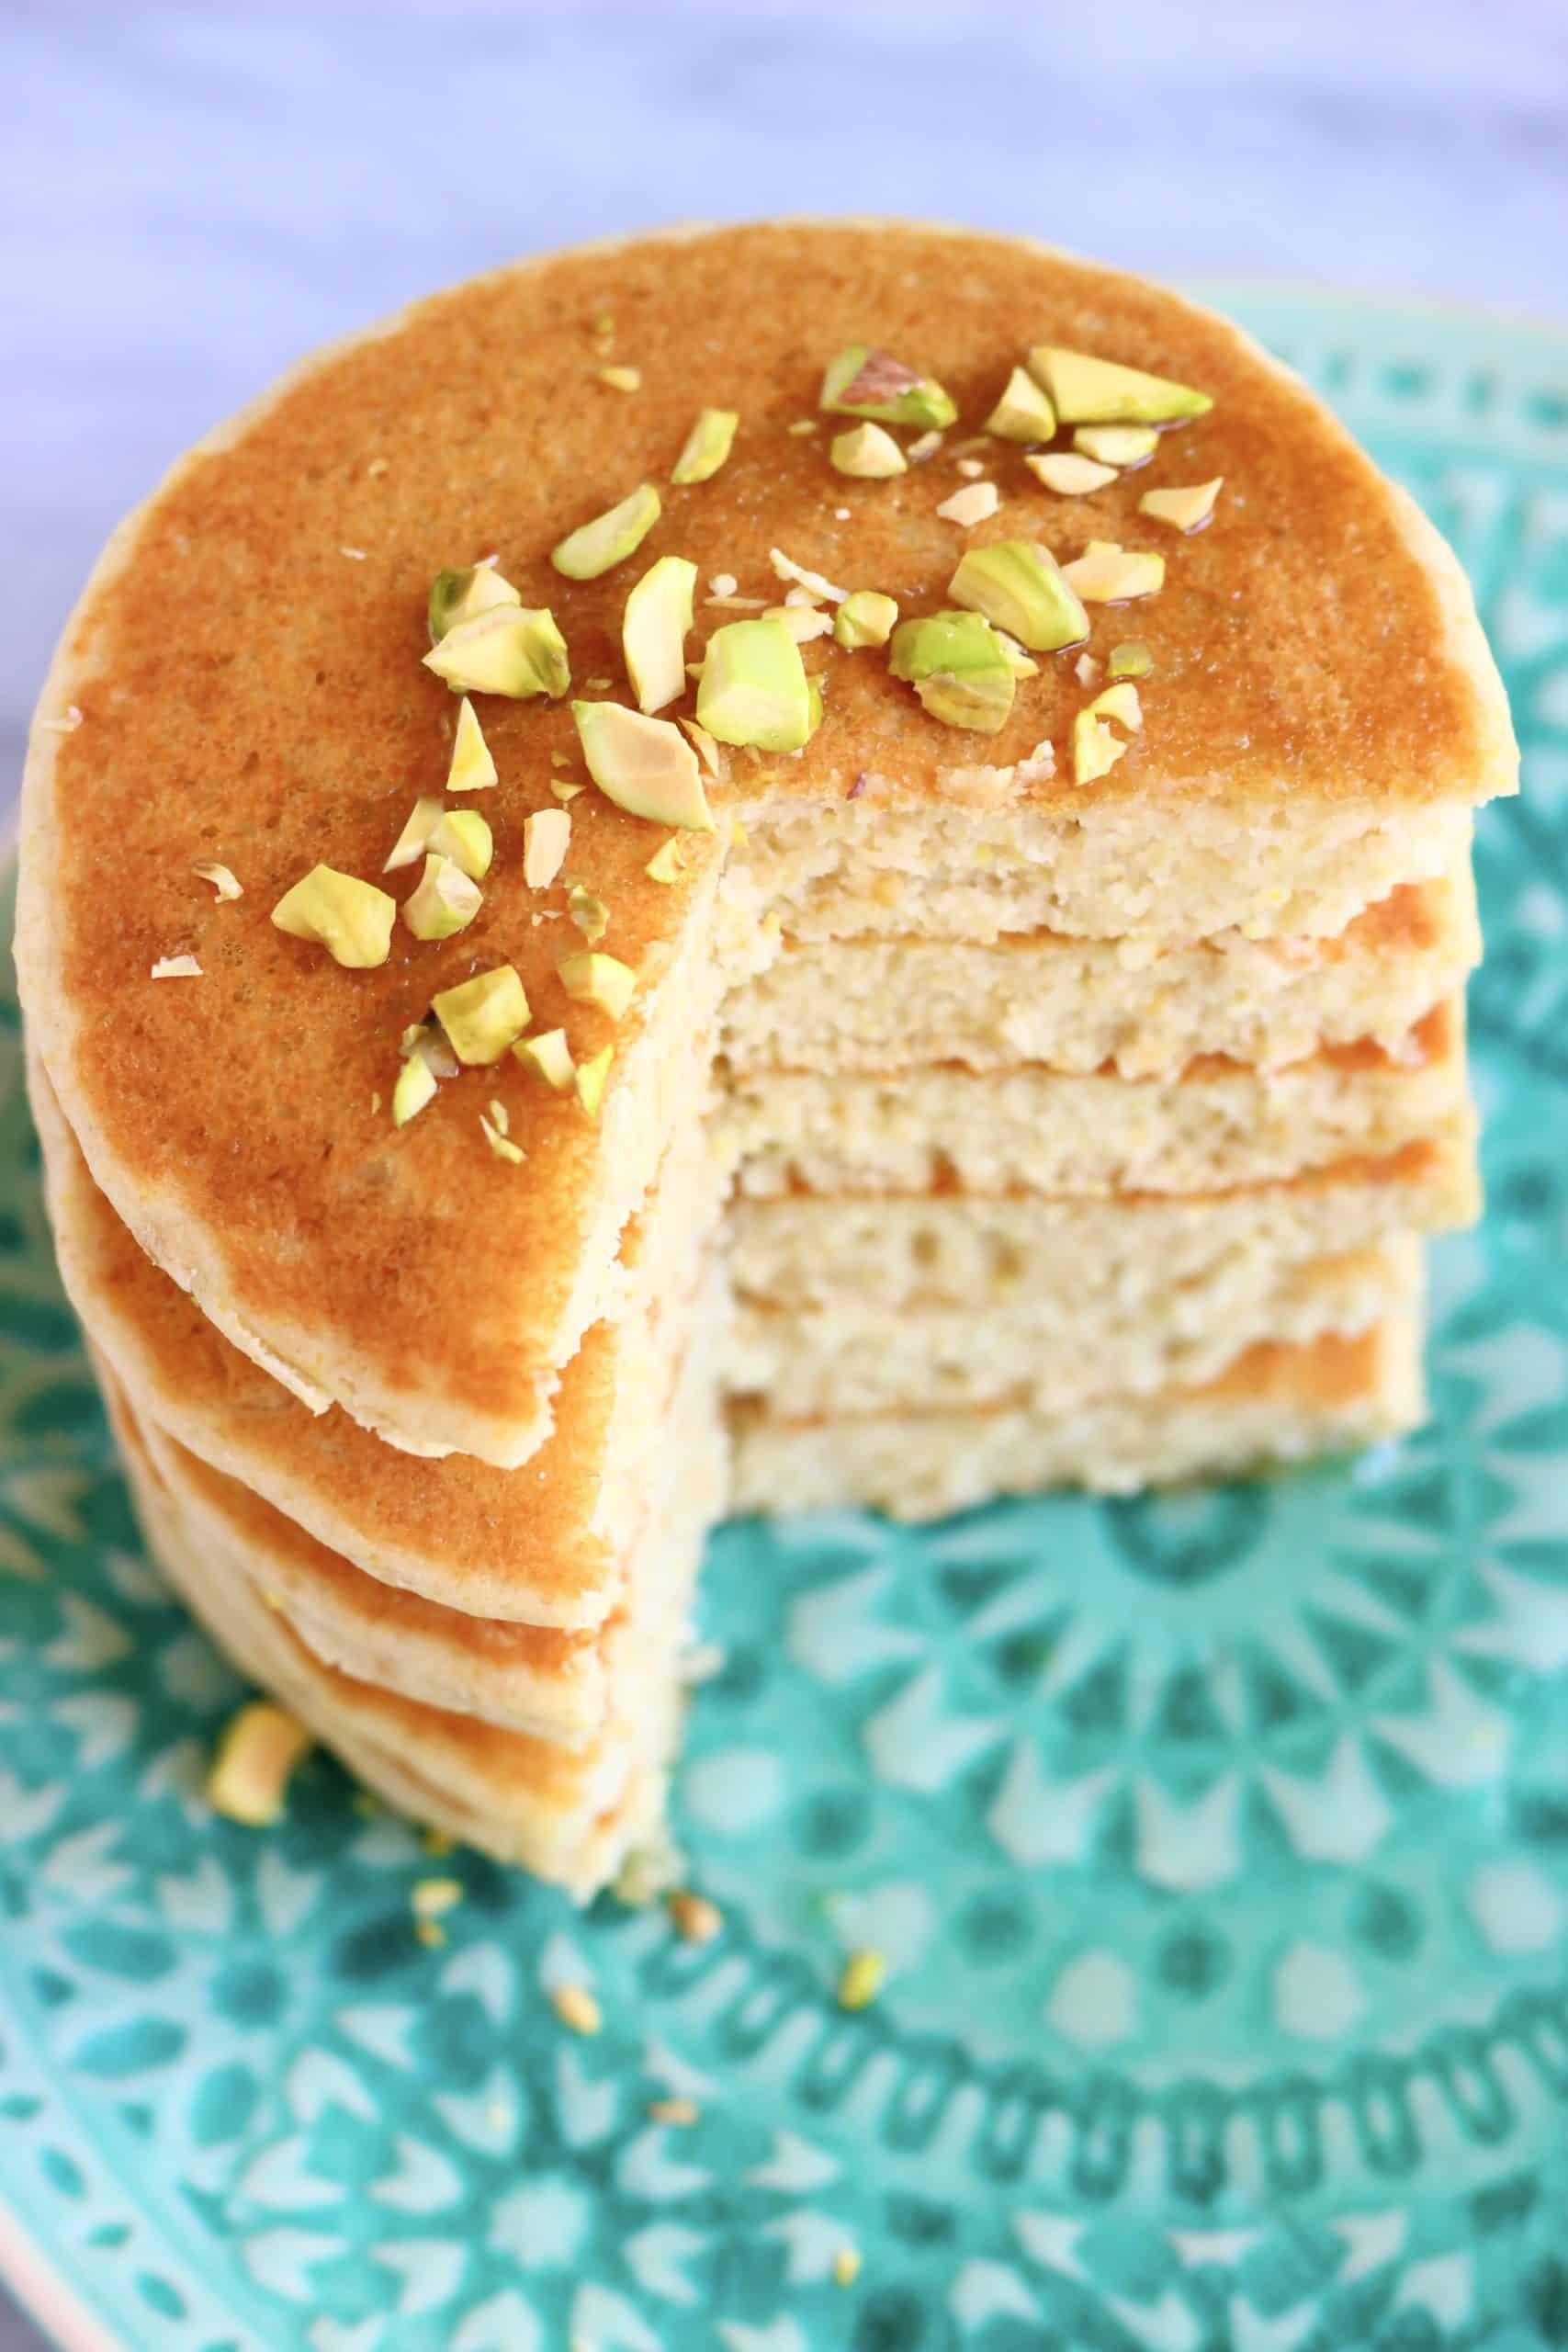 A stack of six sliced flaxseed pancakes on a plate